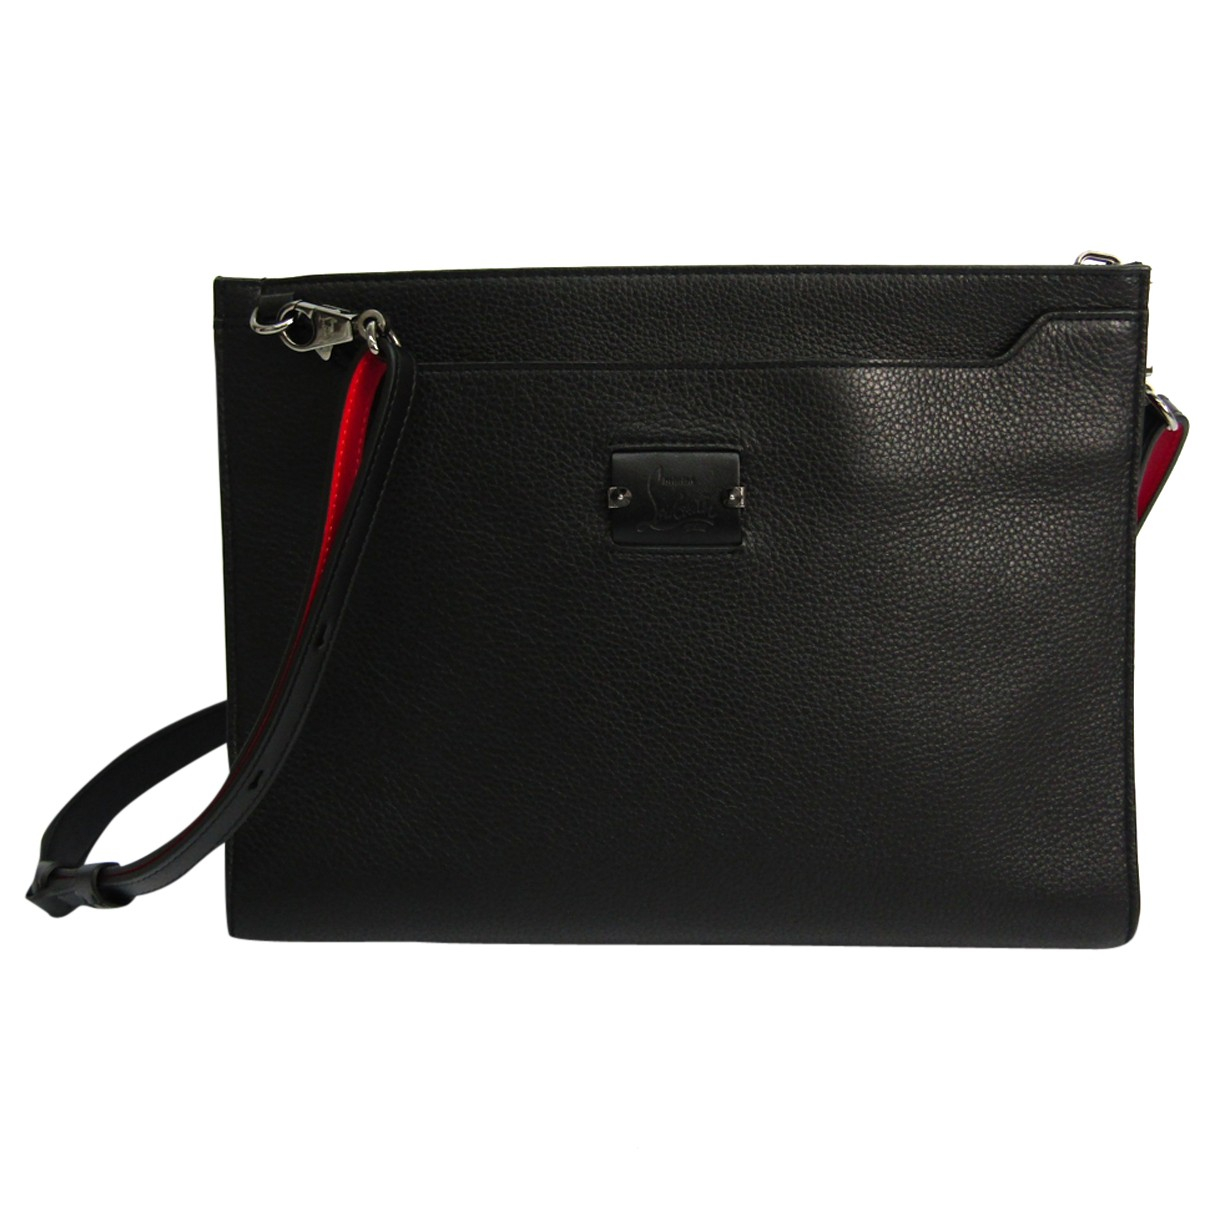 Christian Louboutin N Black Leather handbag for Women N